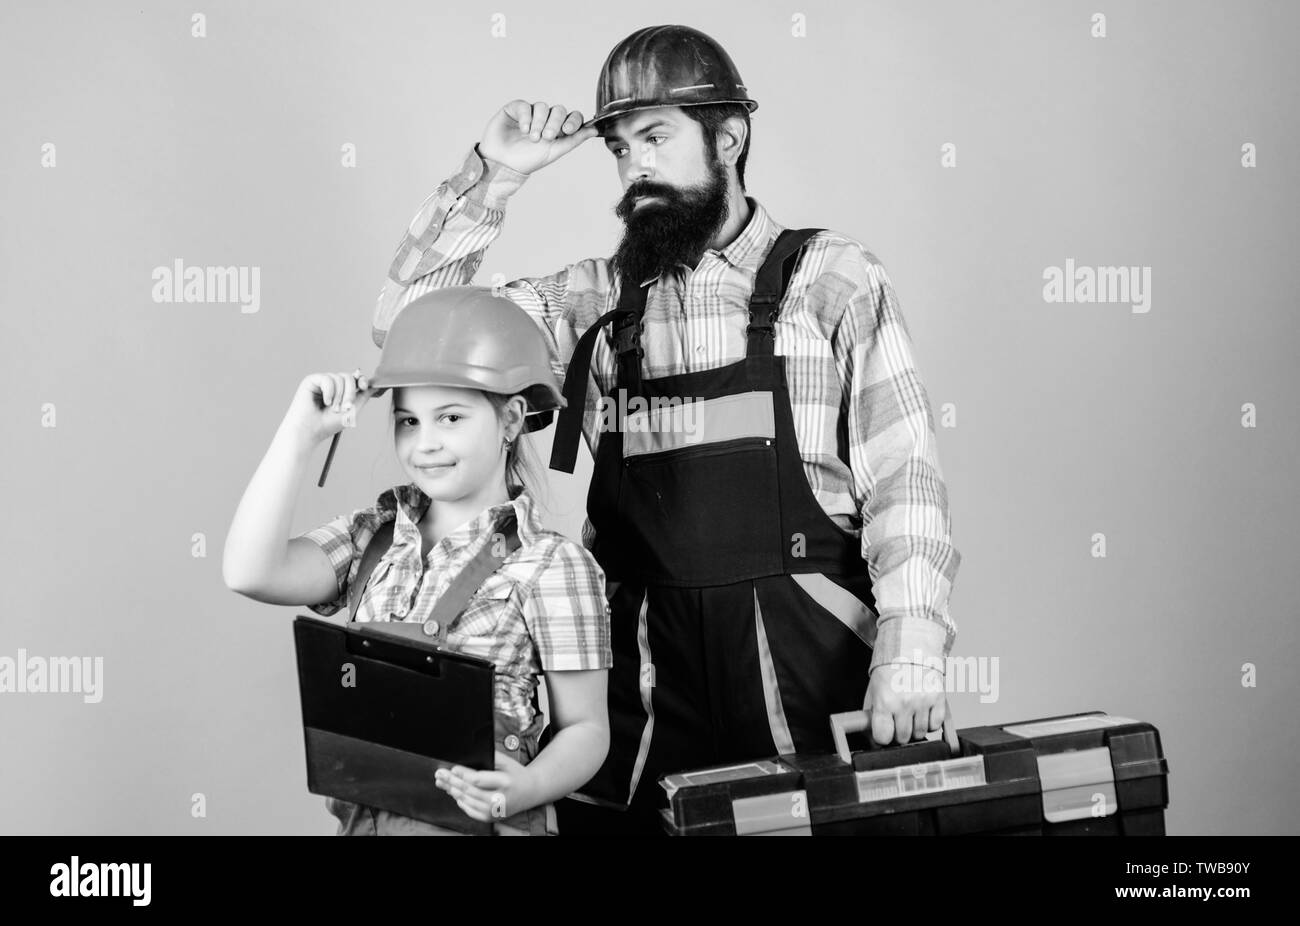 Father and daughter in workshop. Bearded man with little girl. construction worker assistant. Builder or carpenter. Repairman in uniform. Engineer. Repair. Childrens creativity. team at work. - Stock Image